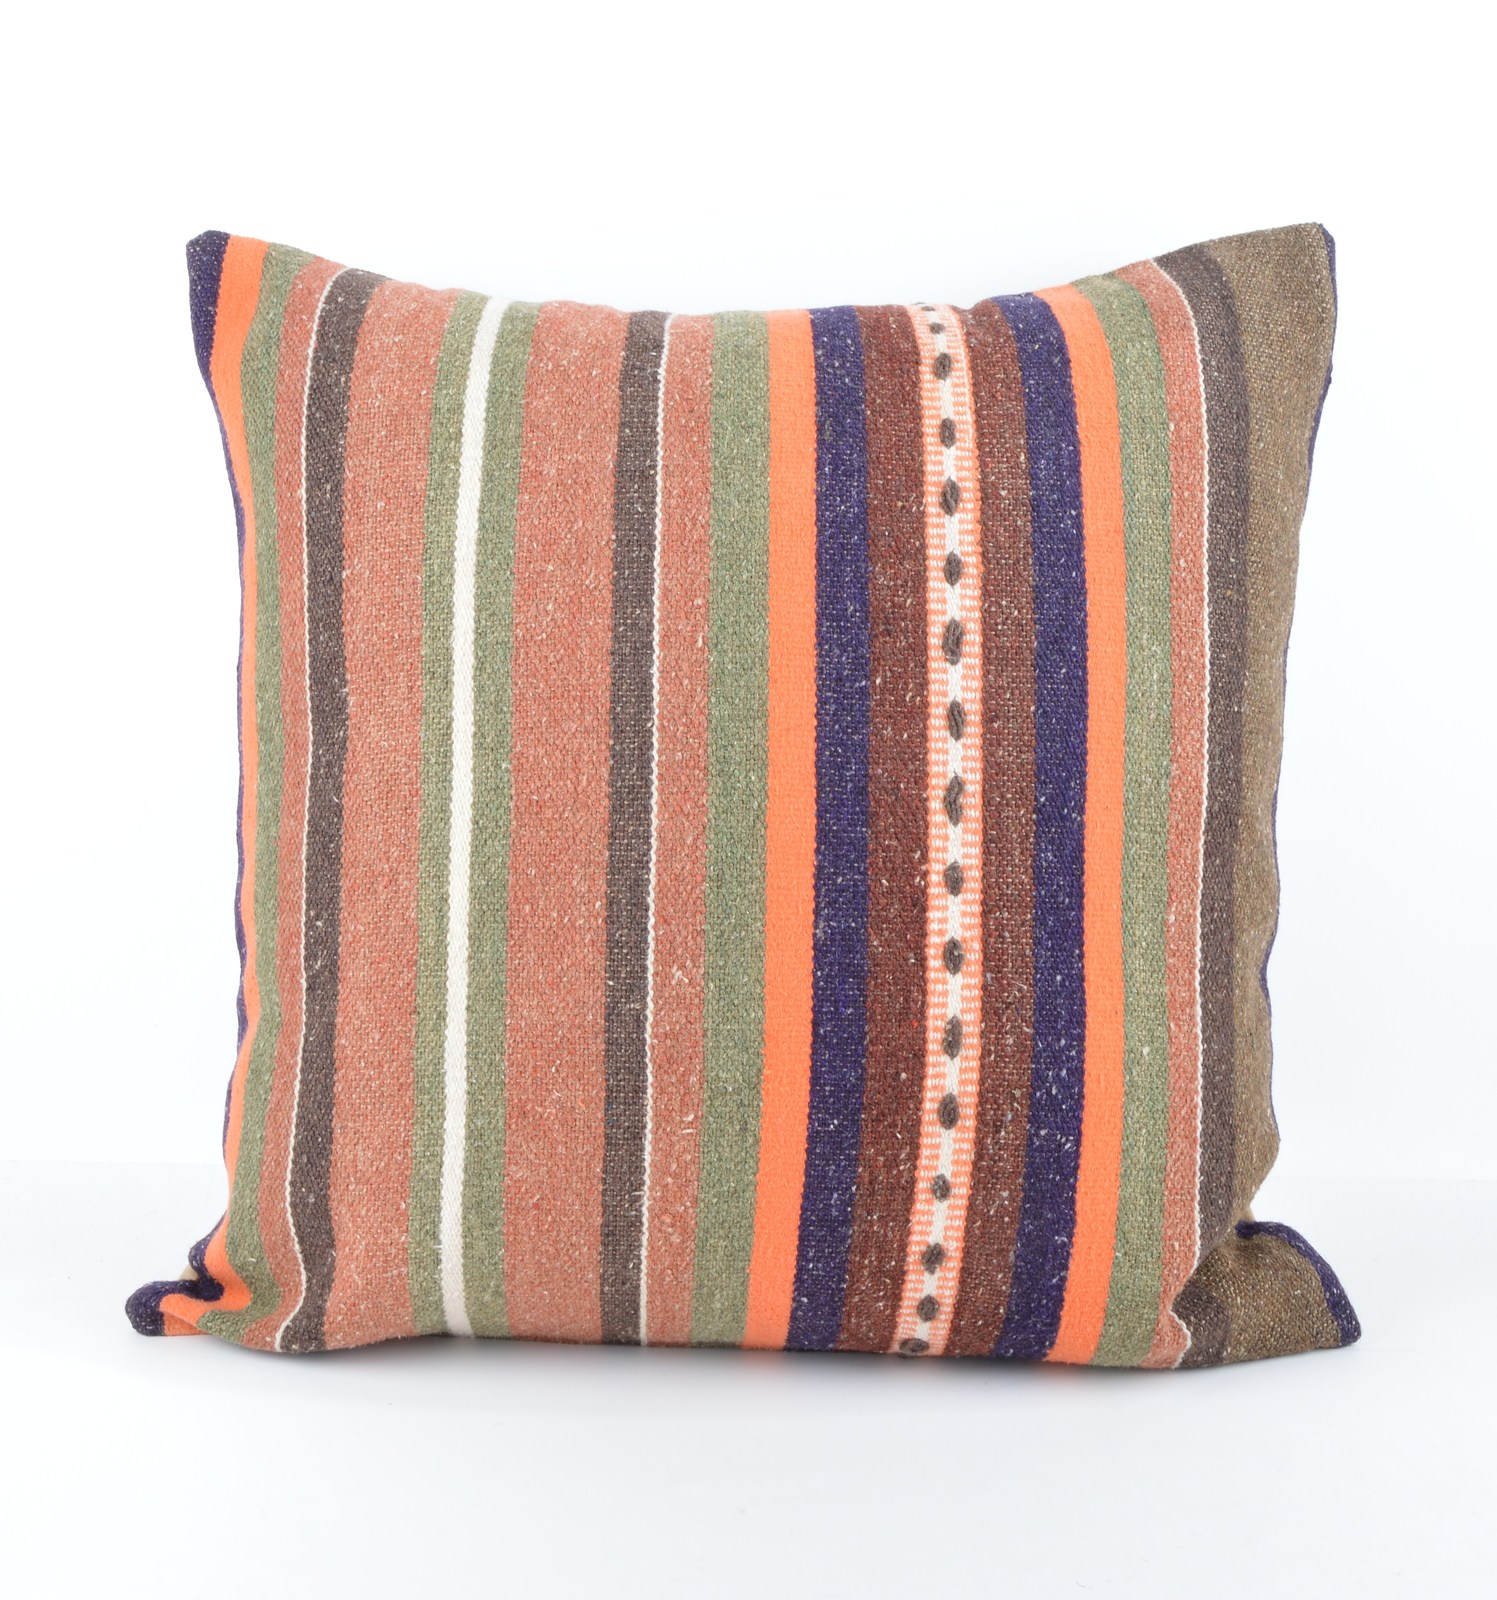 Floor Pillow Covers 25x25 : bohemian pillow cover 20x20 tapestry rug pillow bed floor cushion pillow sham - Pillows